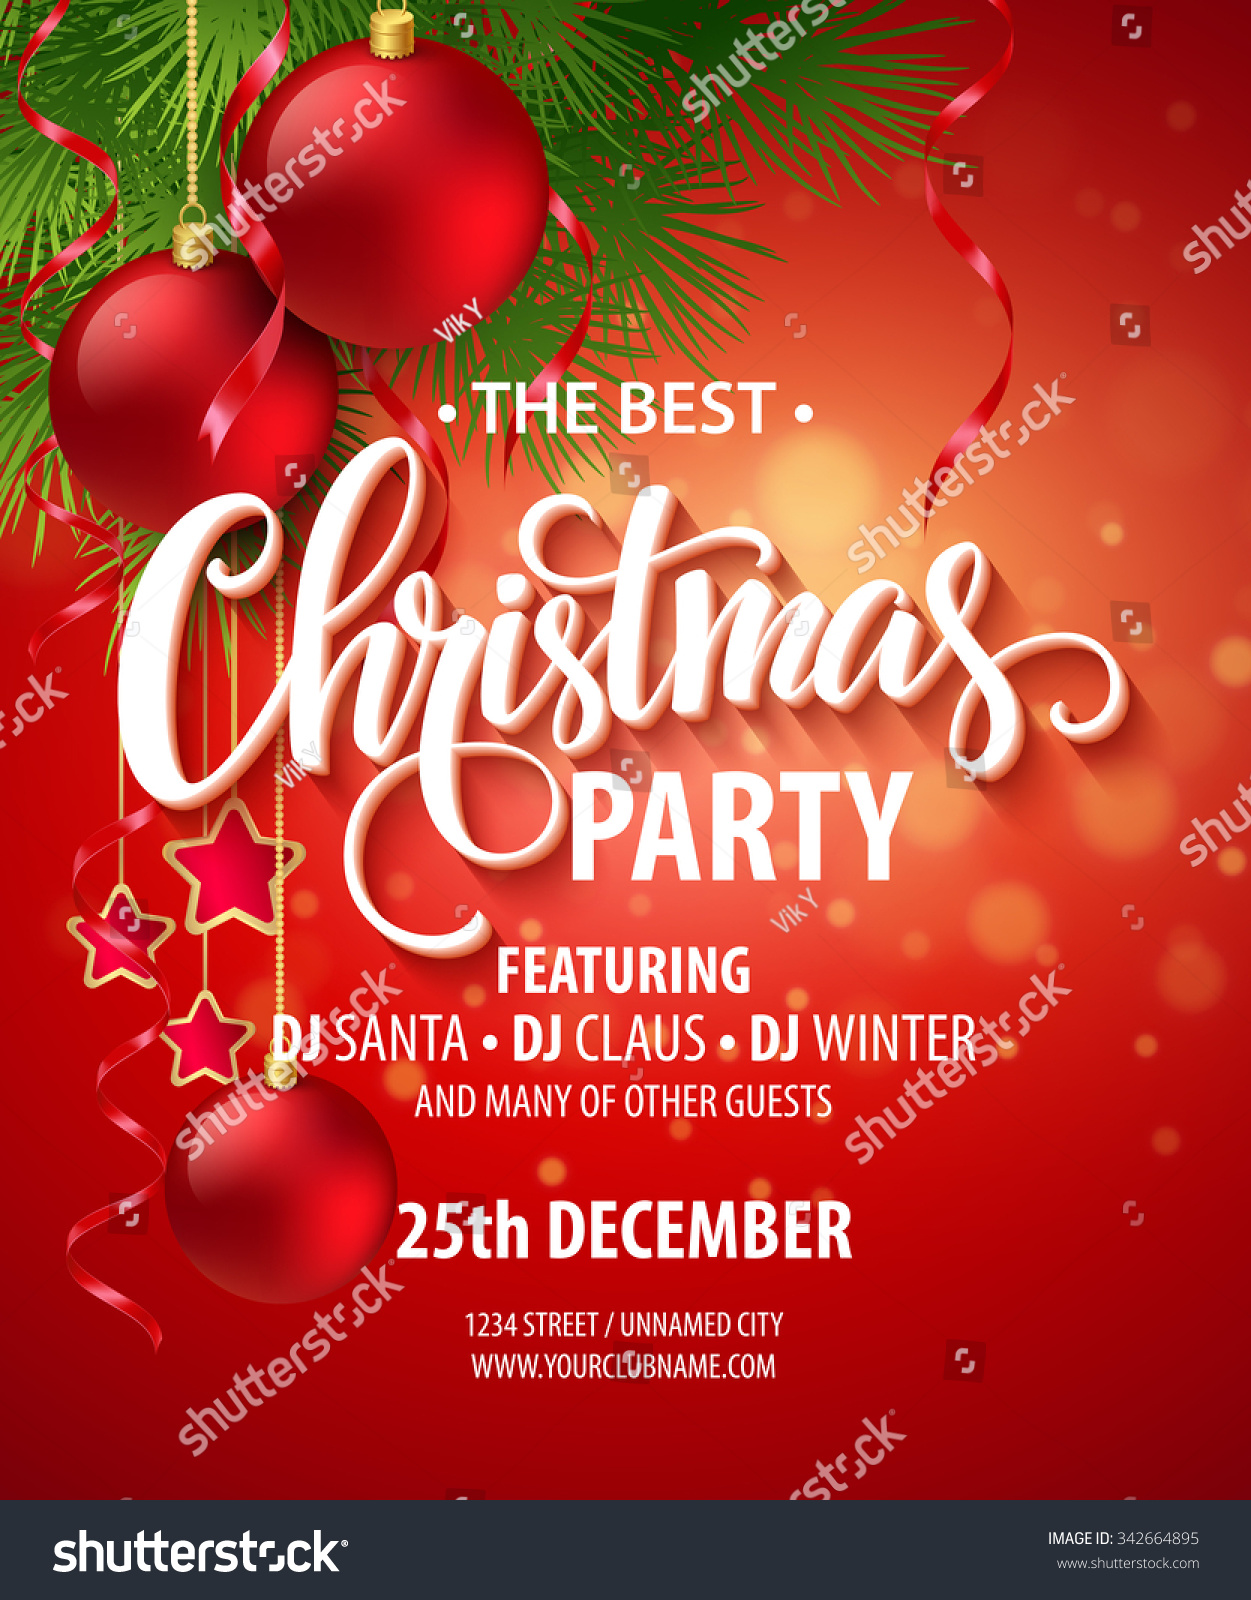 Vector christmas party design template vector illustration eps10